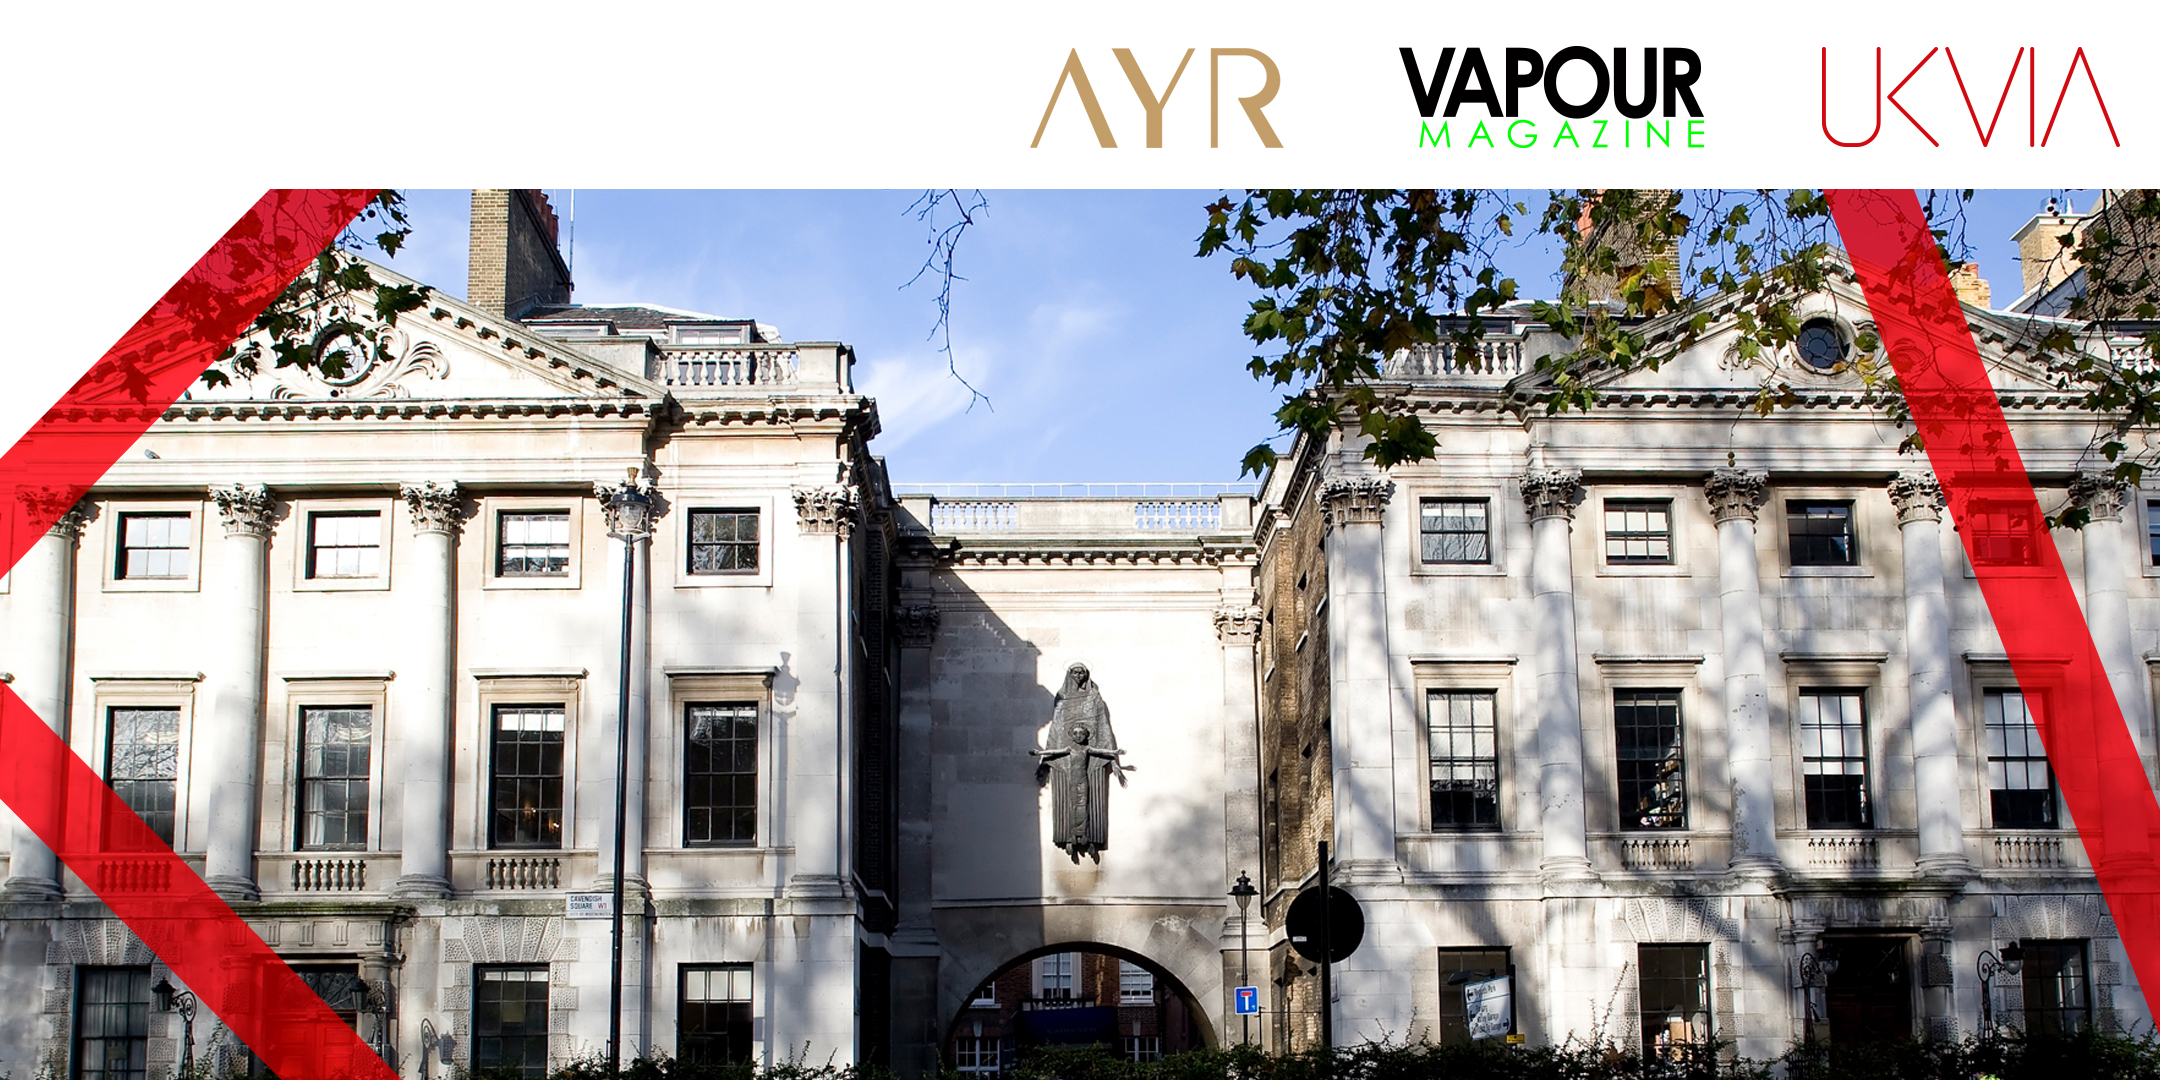 The future growth of vaping top of the agenda at major conference